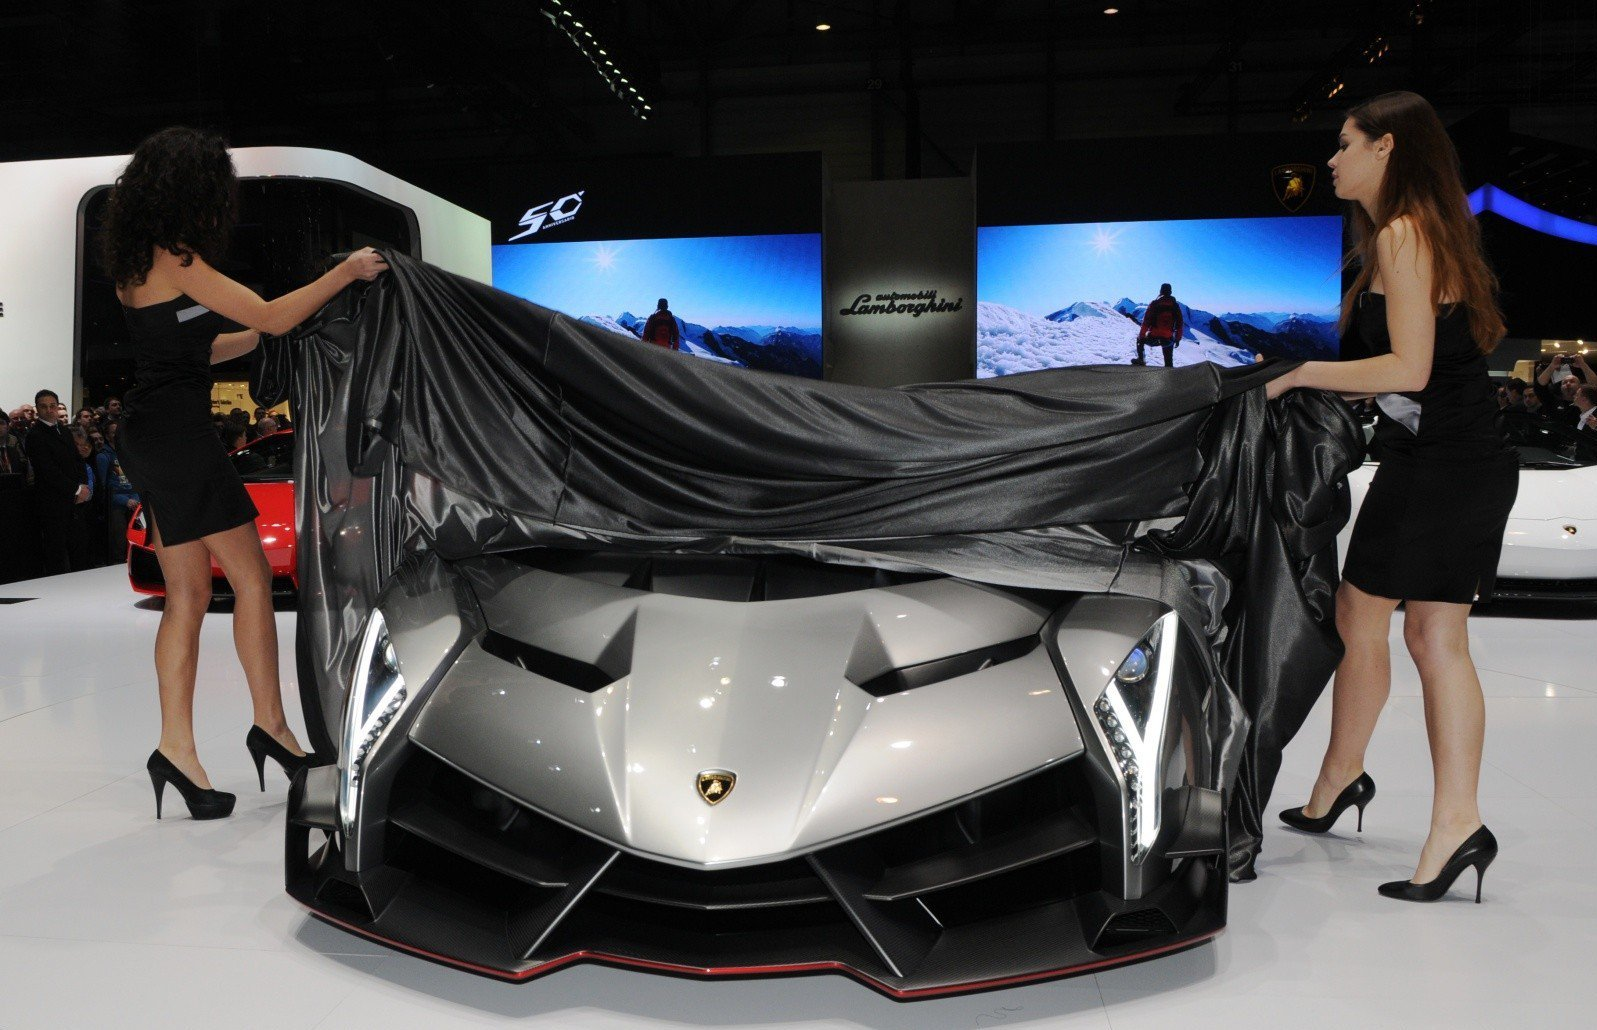 Lamborghini Has Disclosed Itu0027s Speediest And Most Intense Street Auto Ever:  The Veneno. Is The Auto Madly Quick As Well As The It Will Be Fantastically  ...